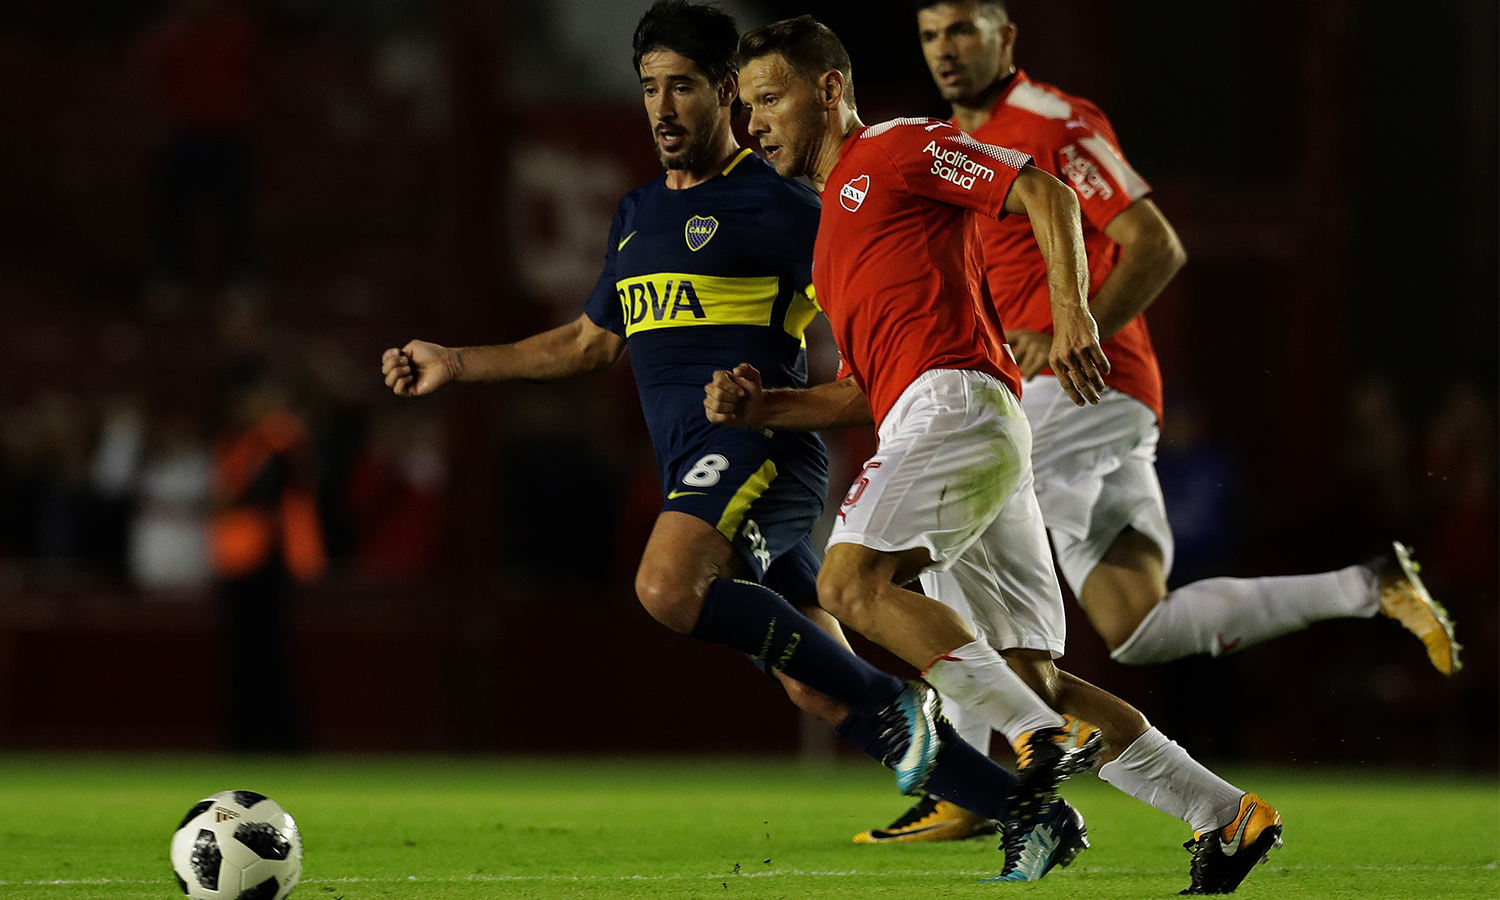 Independiente Boca Previa horario TV y formaciones